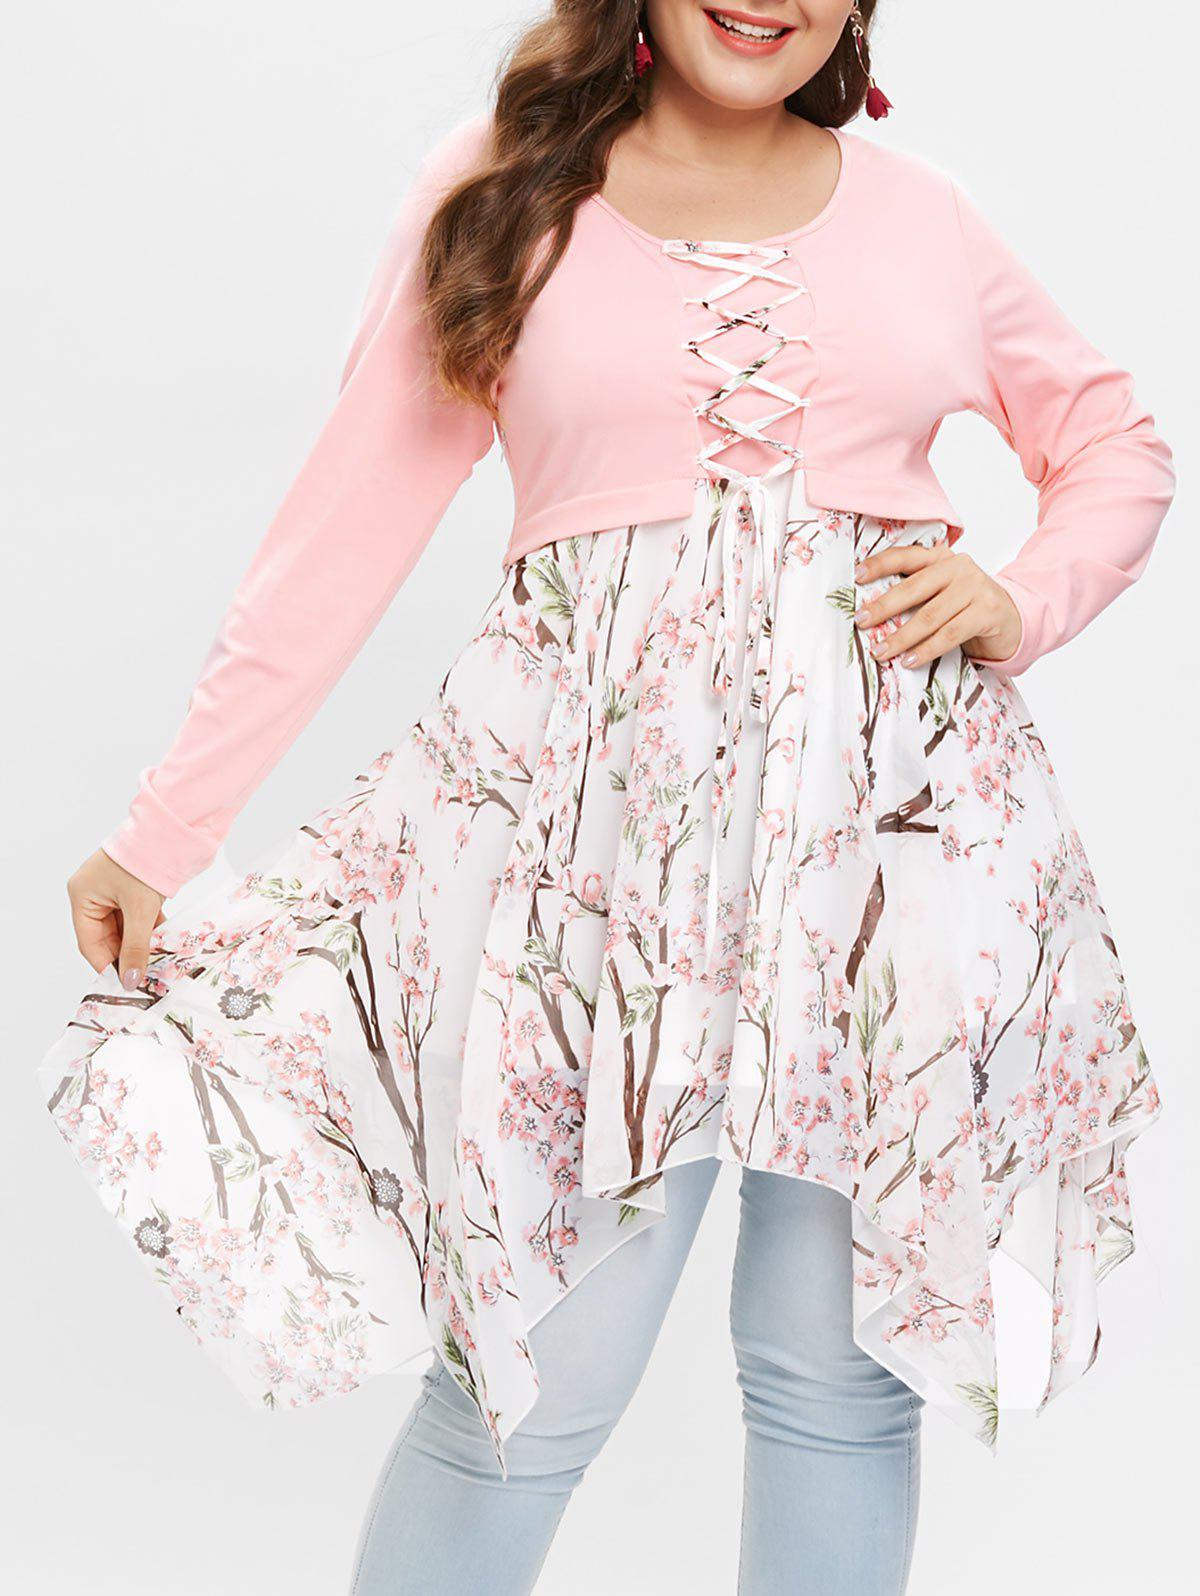 Plus Size Lace Up Peach Blossom Handkerchief T-shirt - LIGHT PINK 5X